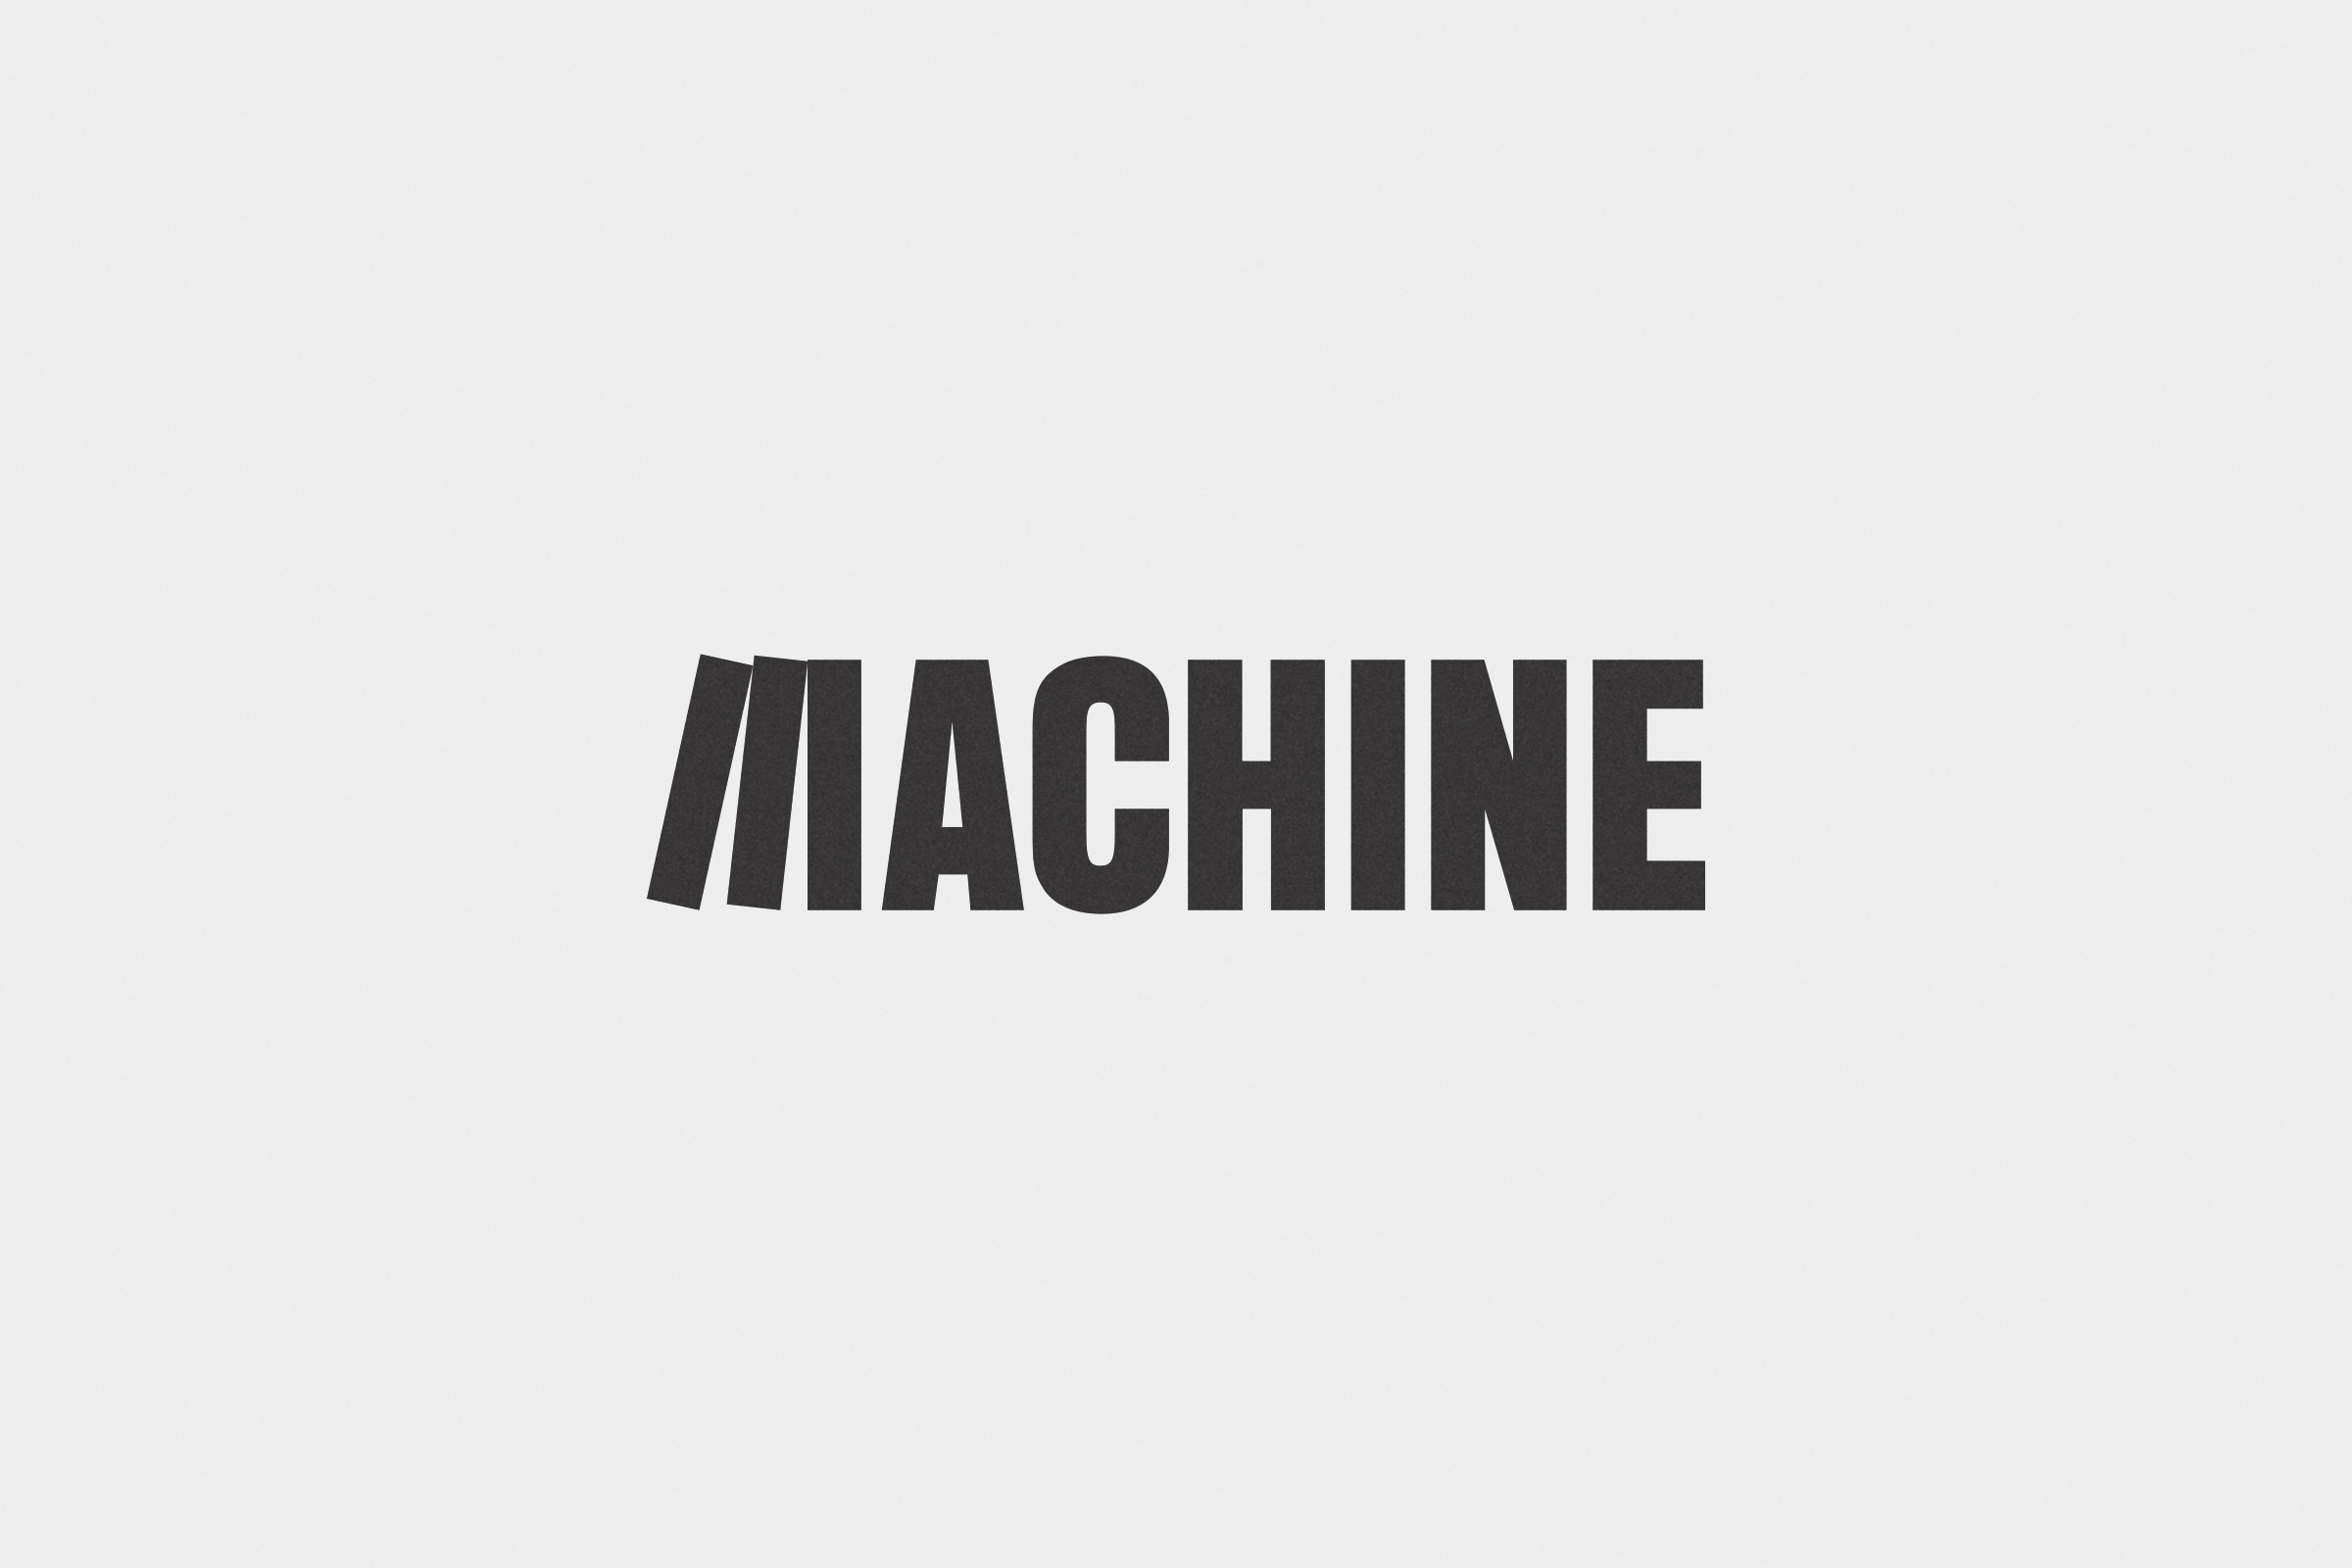 TBS_LogosAndMarks_Machine_1